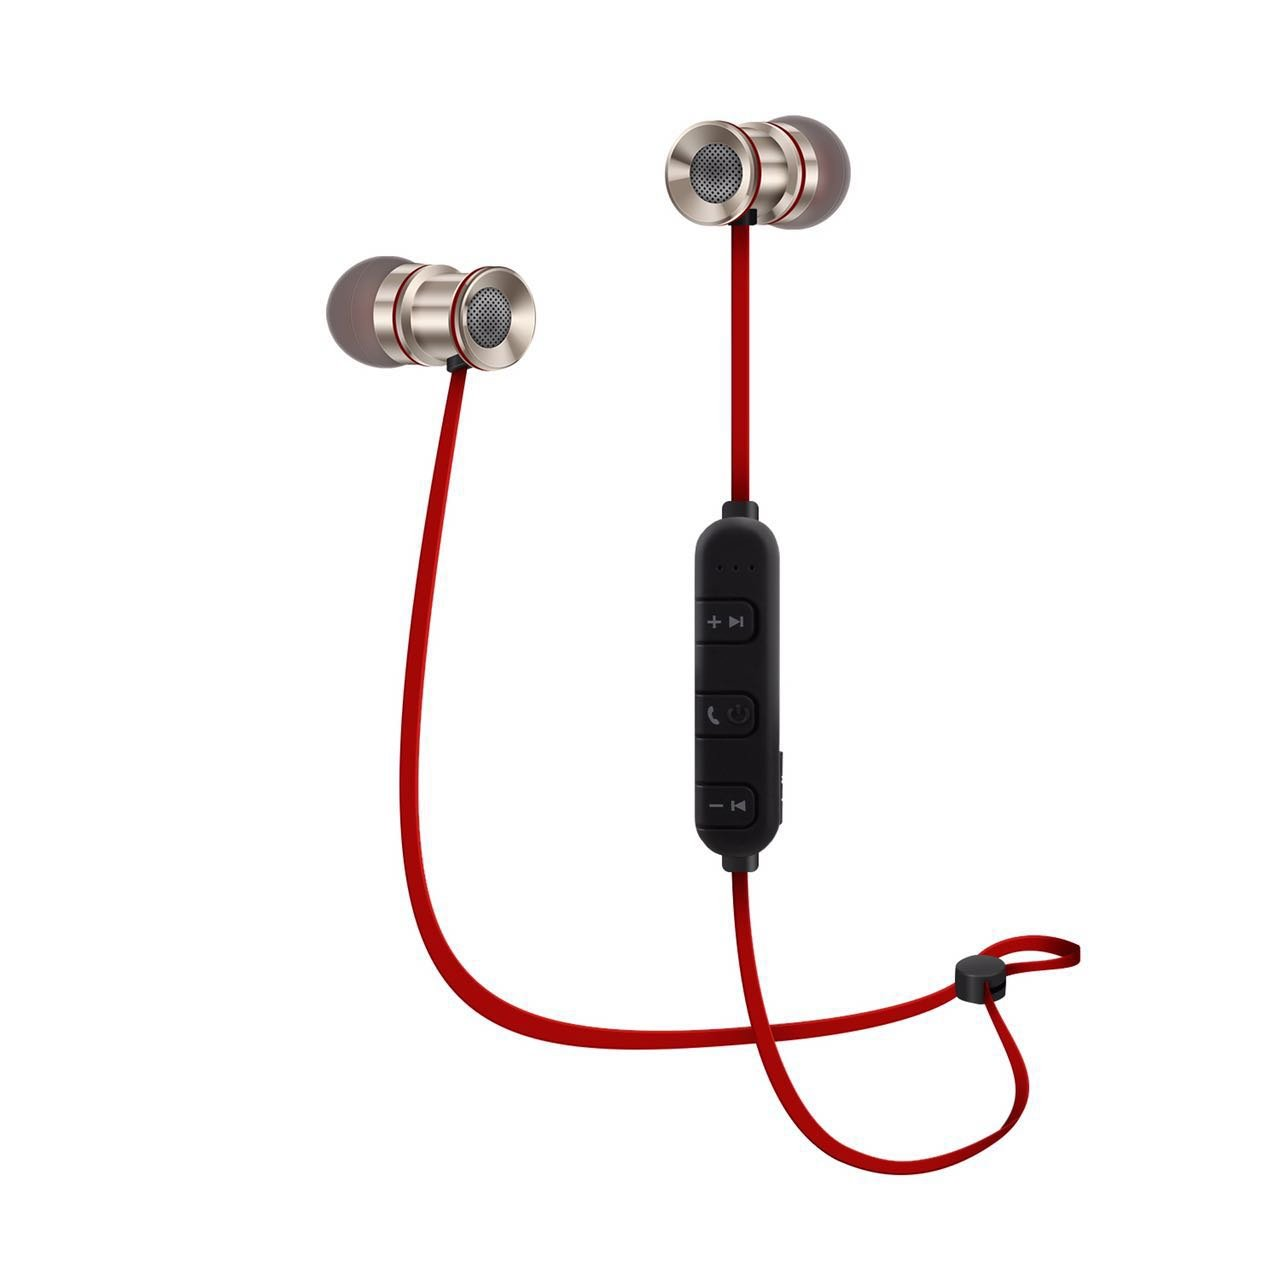 Fashion In-ear-Sport-Stereo-Magnetic- Wireless-Bluetooth Earphone, compatible with most universal bluetooth devices such as androids by UAKAM by UAKAM (Image #5)